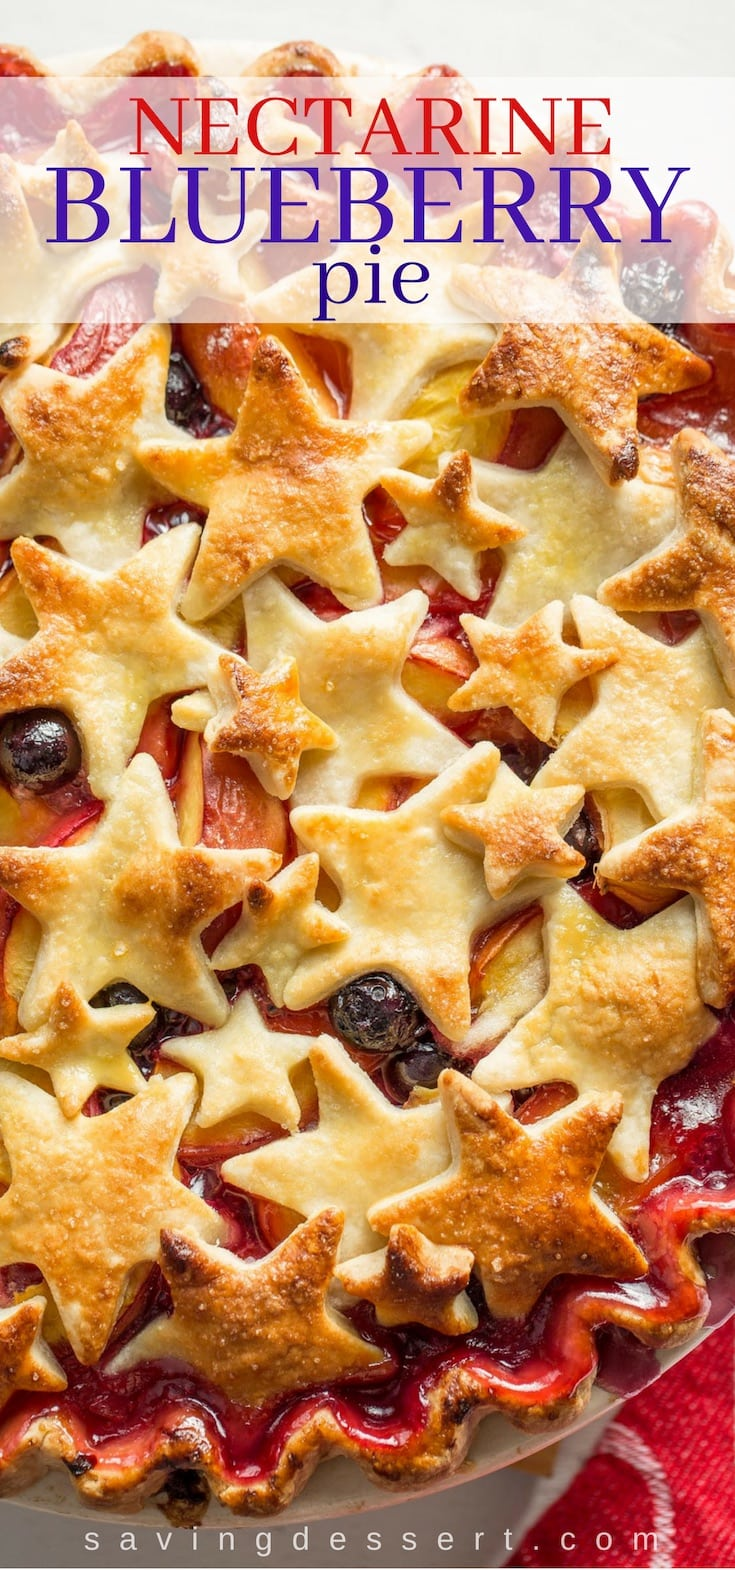 A close up of a nectarine blueberry pie with star cut-outs on top